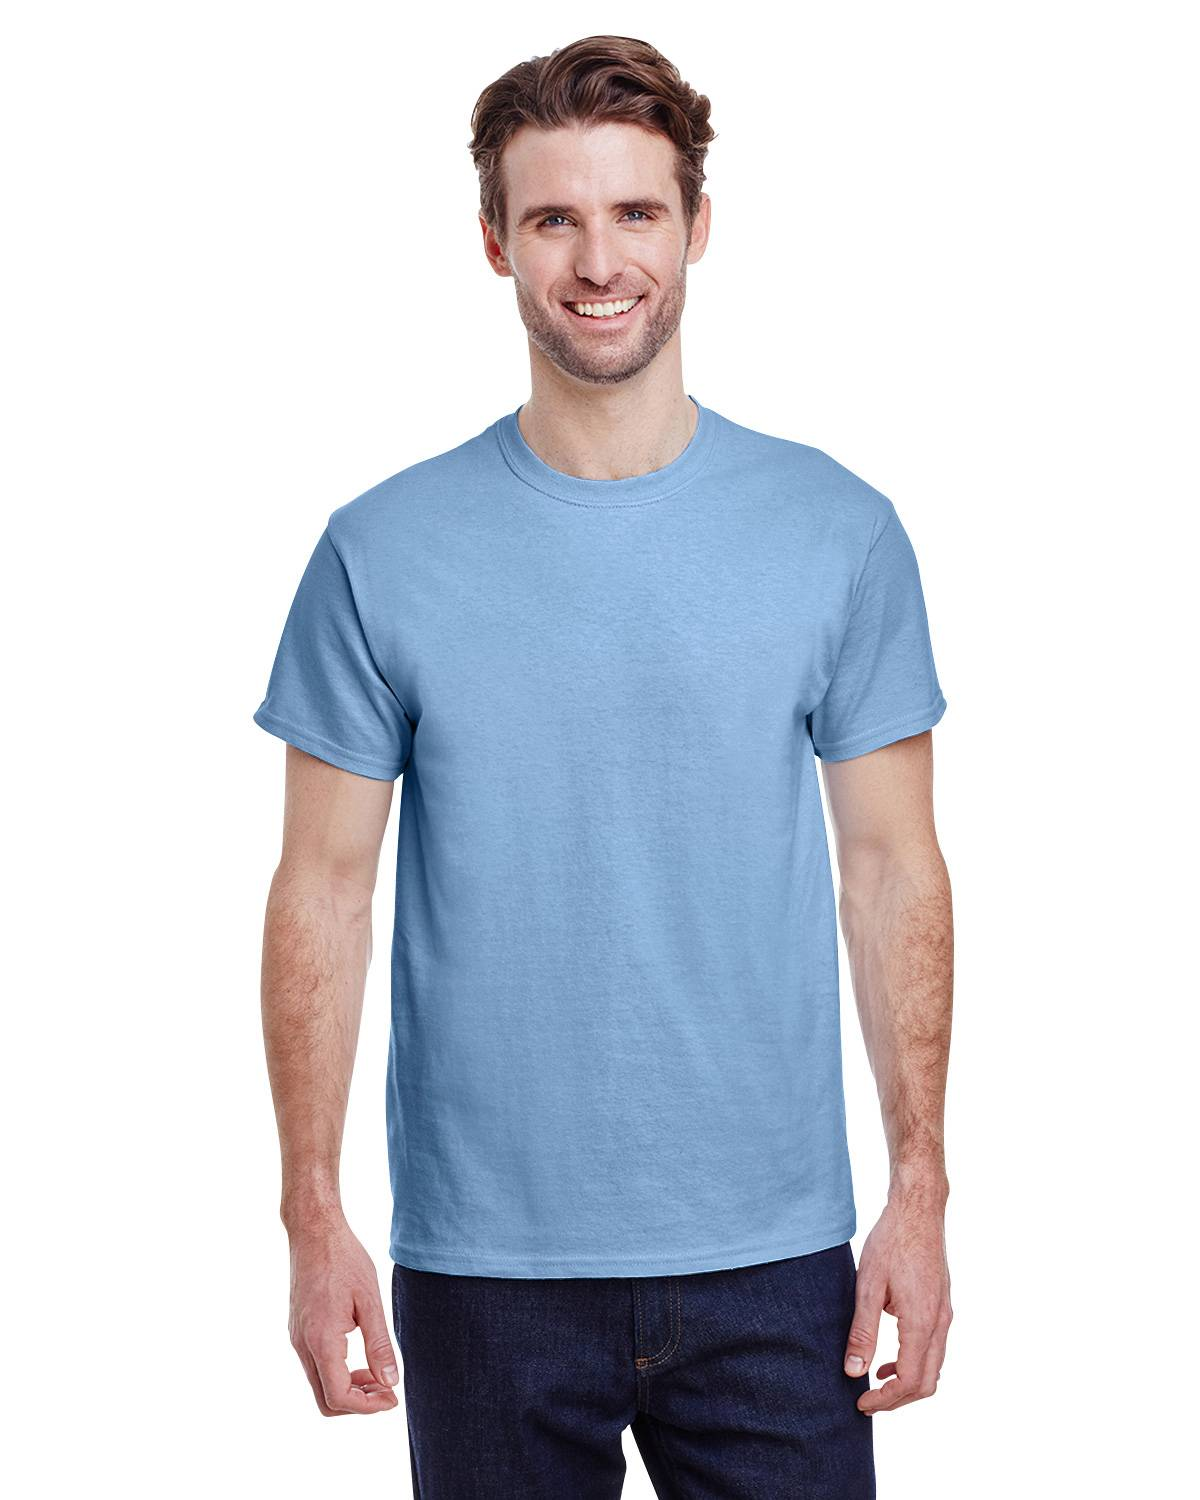 Gildan G5000 Short Sleeve Tee - Light Blue - XL G5000